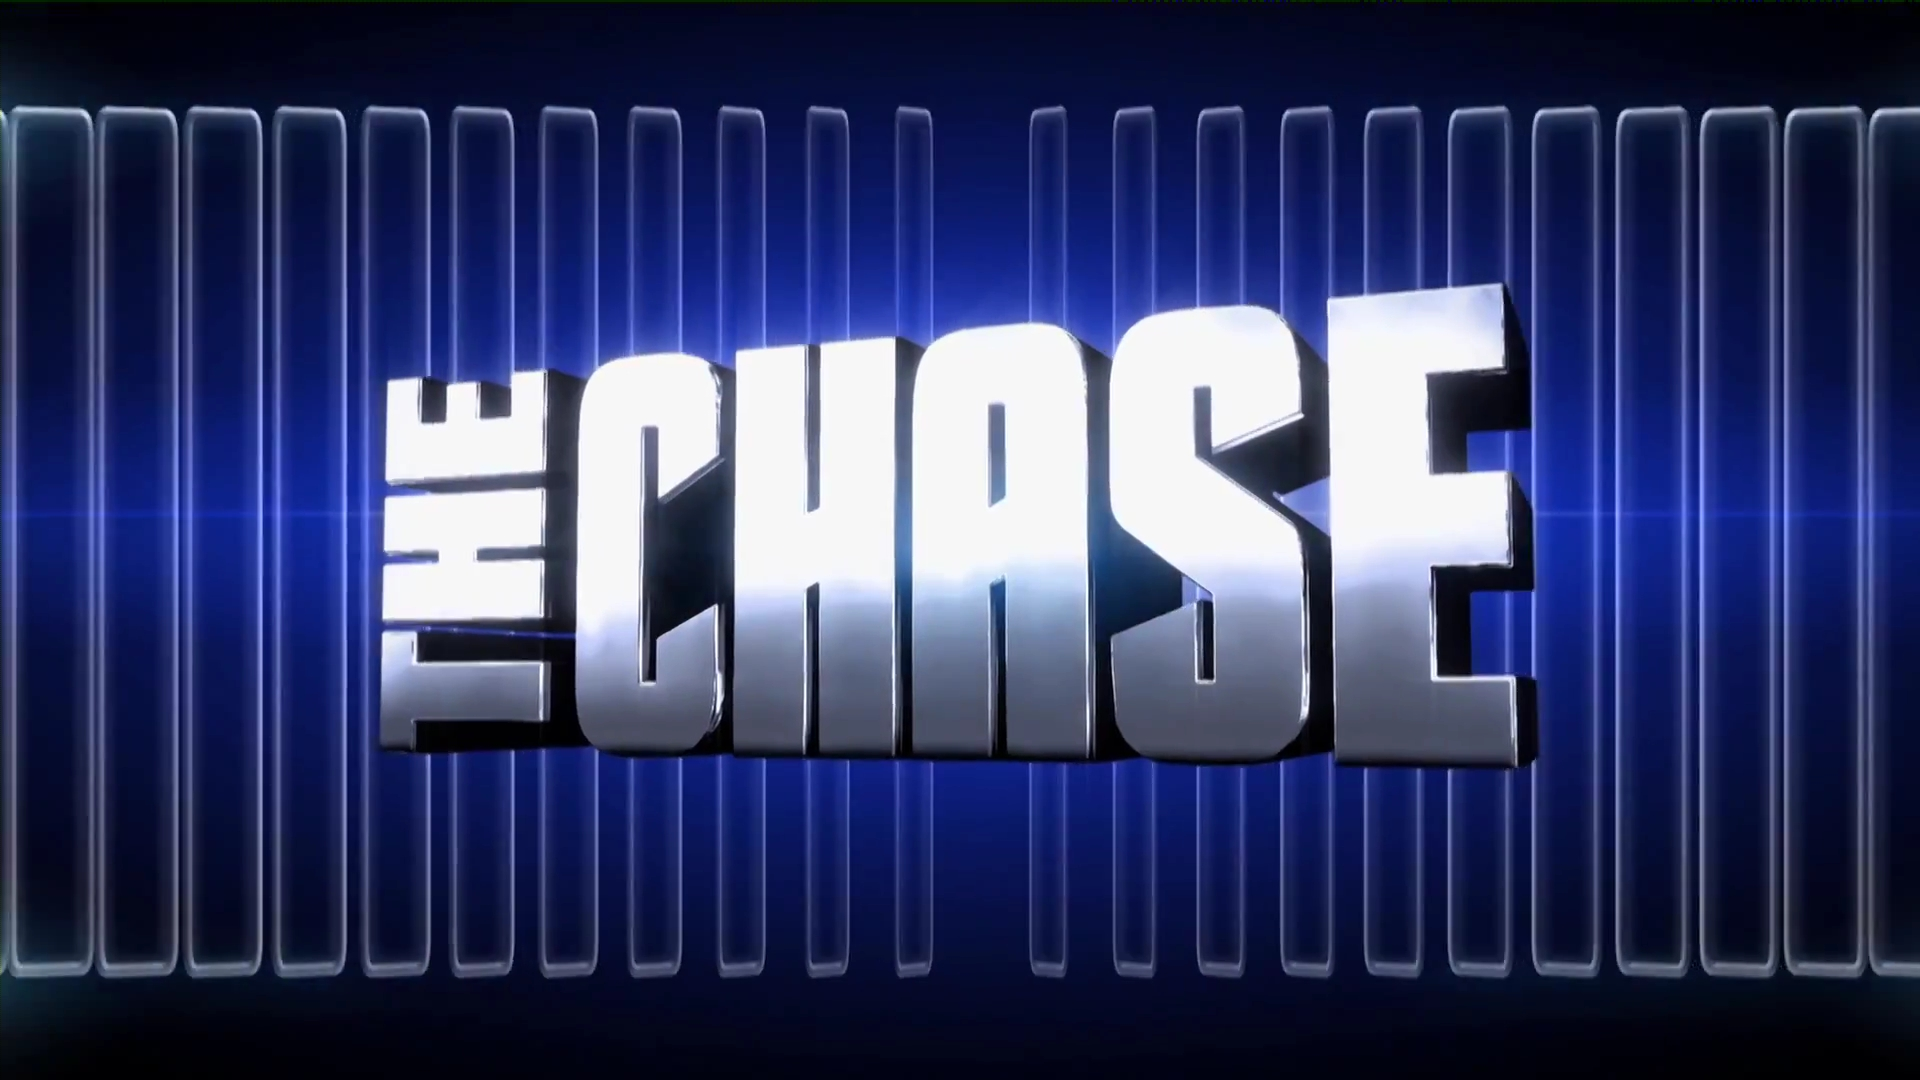 http://vignette2.wikia.nocookie.net/gameshows/images/9/95/The_Chase.jpg/revision/latest?cb=20130819222730